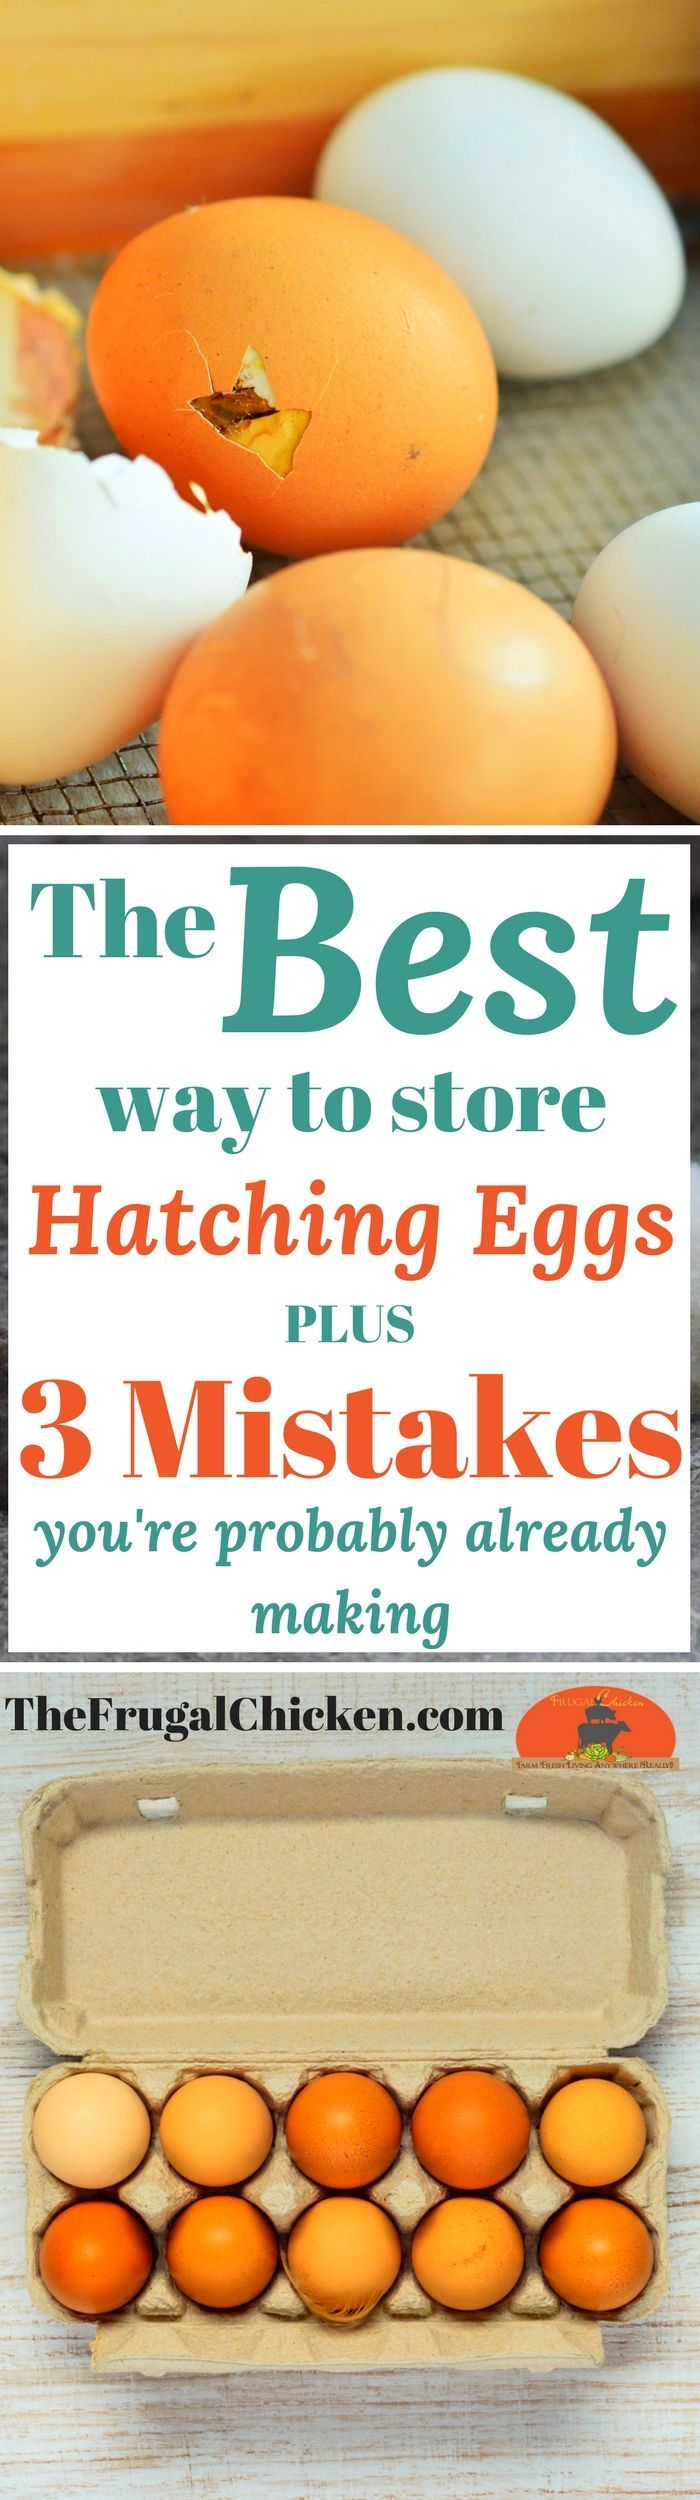 Chicken and duck hatching eggs should be stored a certain way. Here's exactly what to do so your eggs can hatch into chicks!